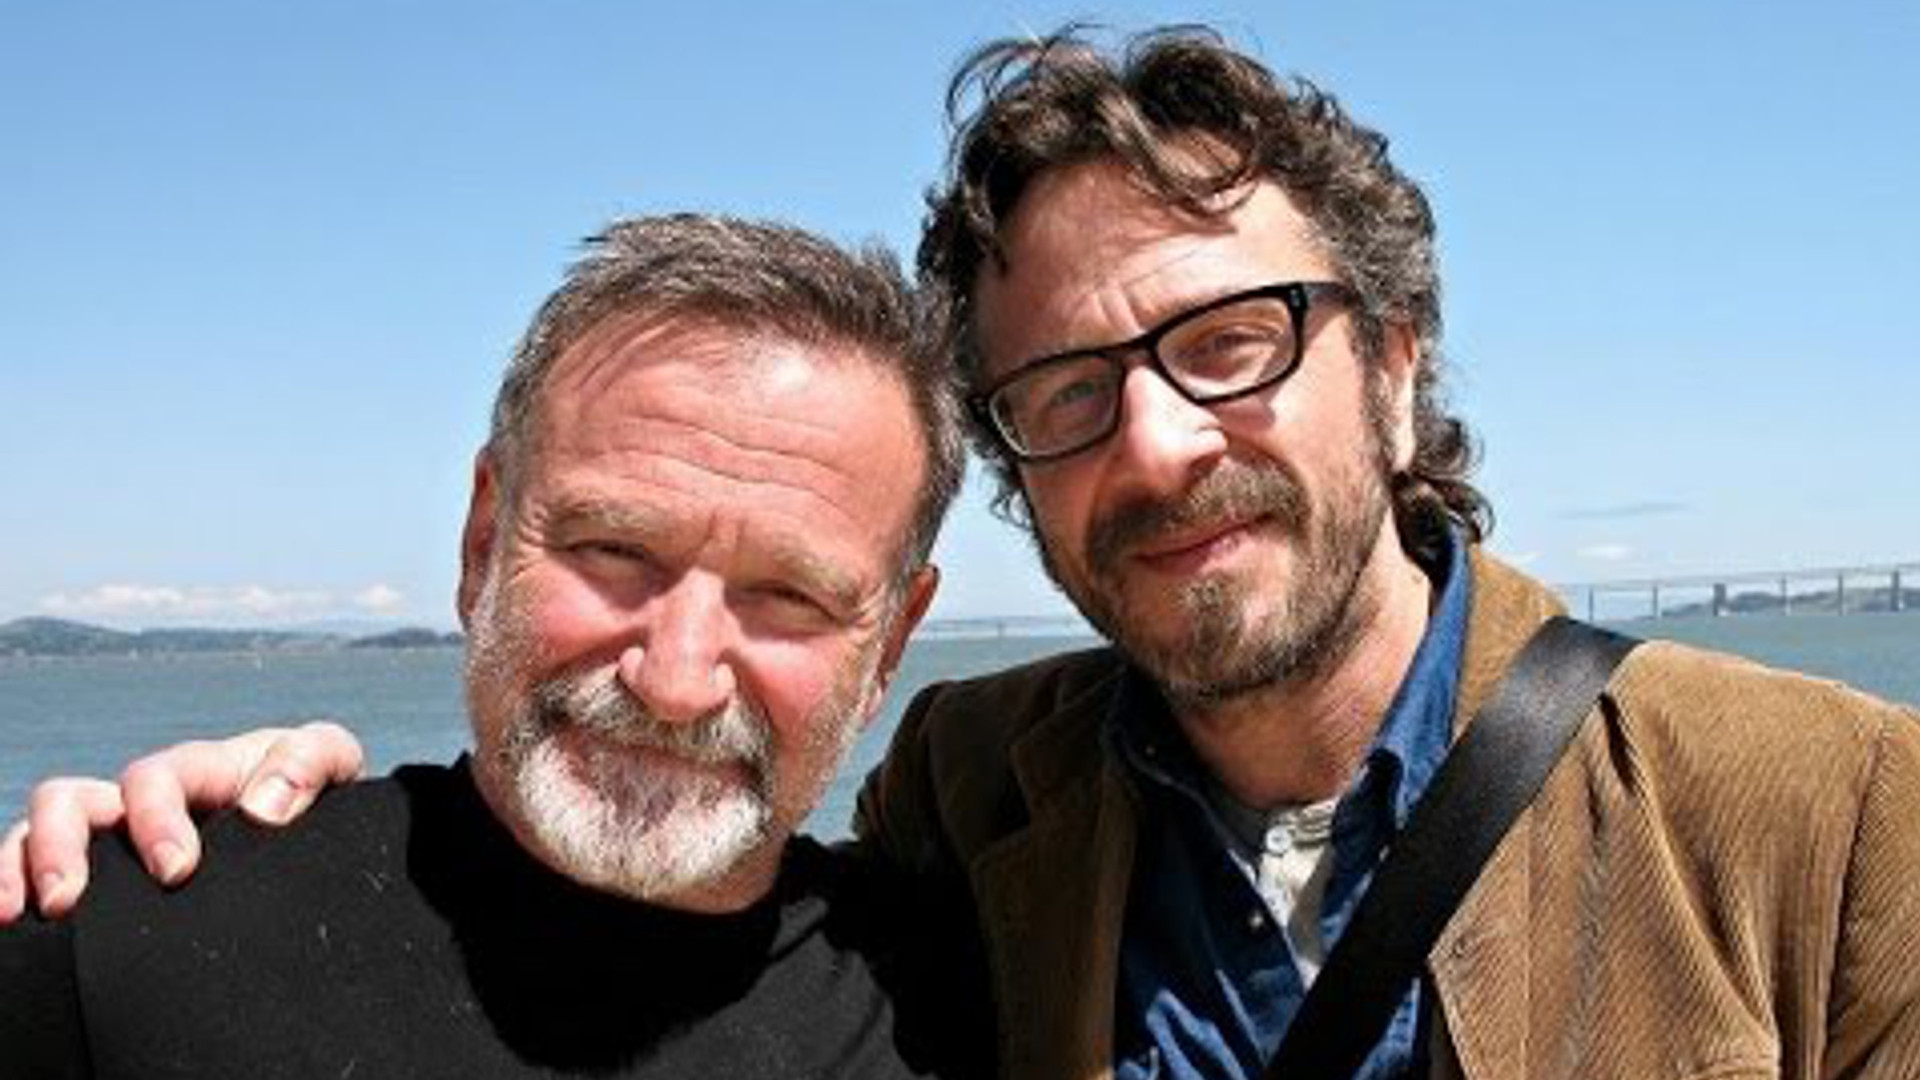 5 WTF With Marc Maron Episodes That Brilliantly Tackle